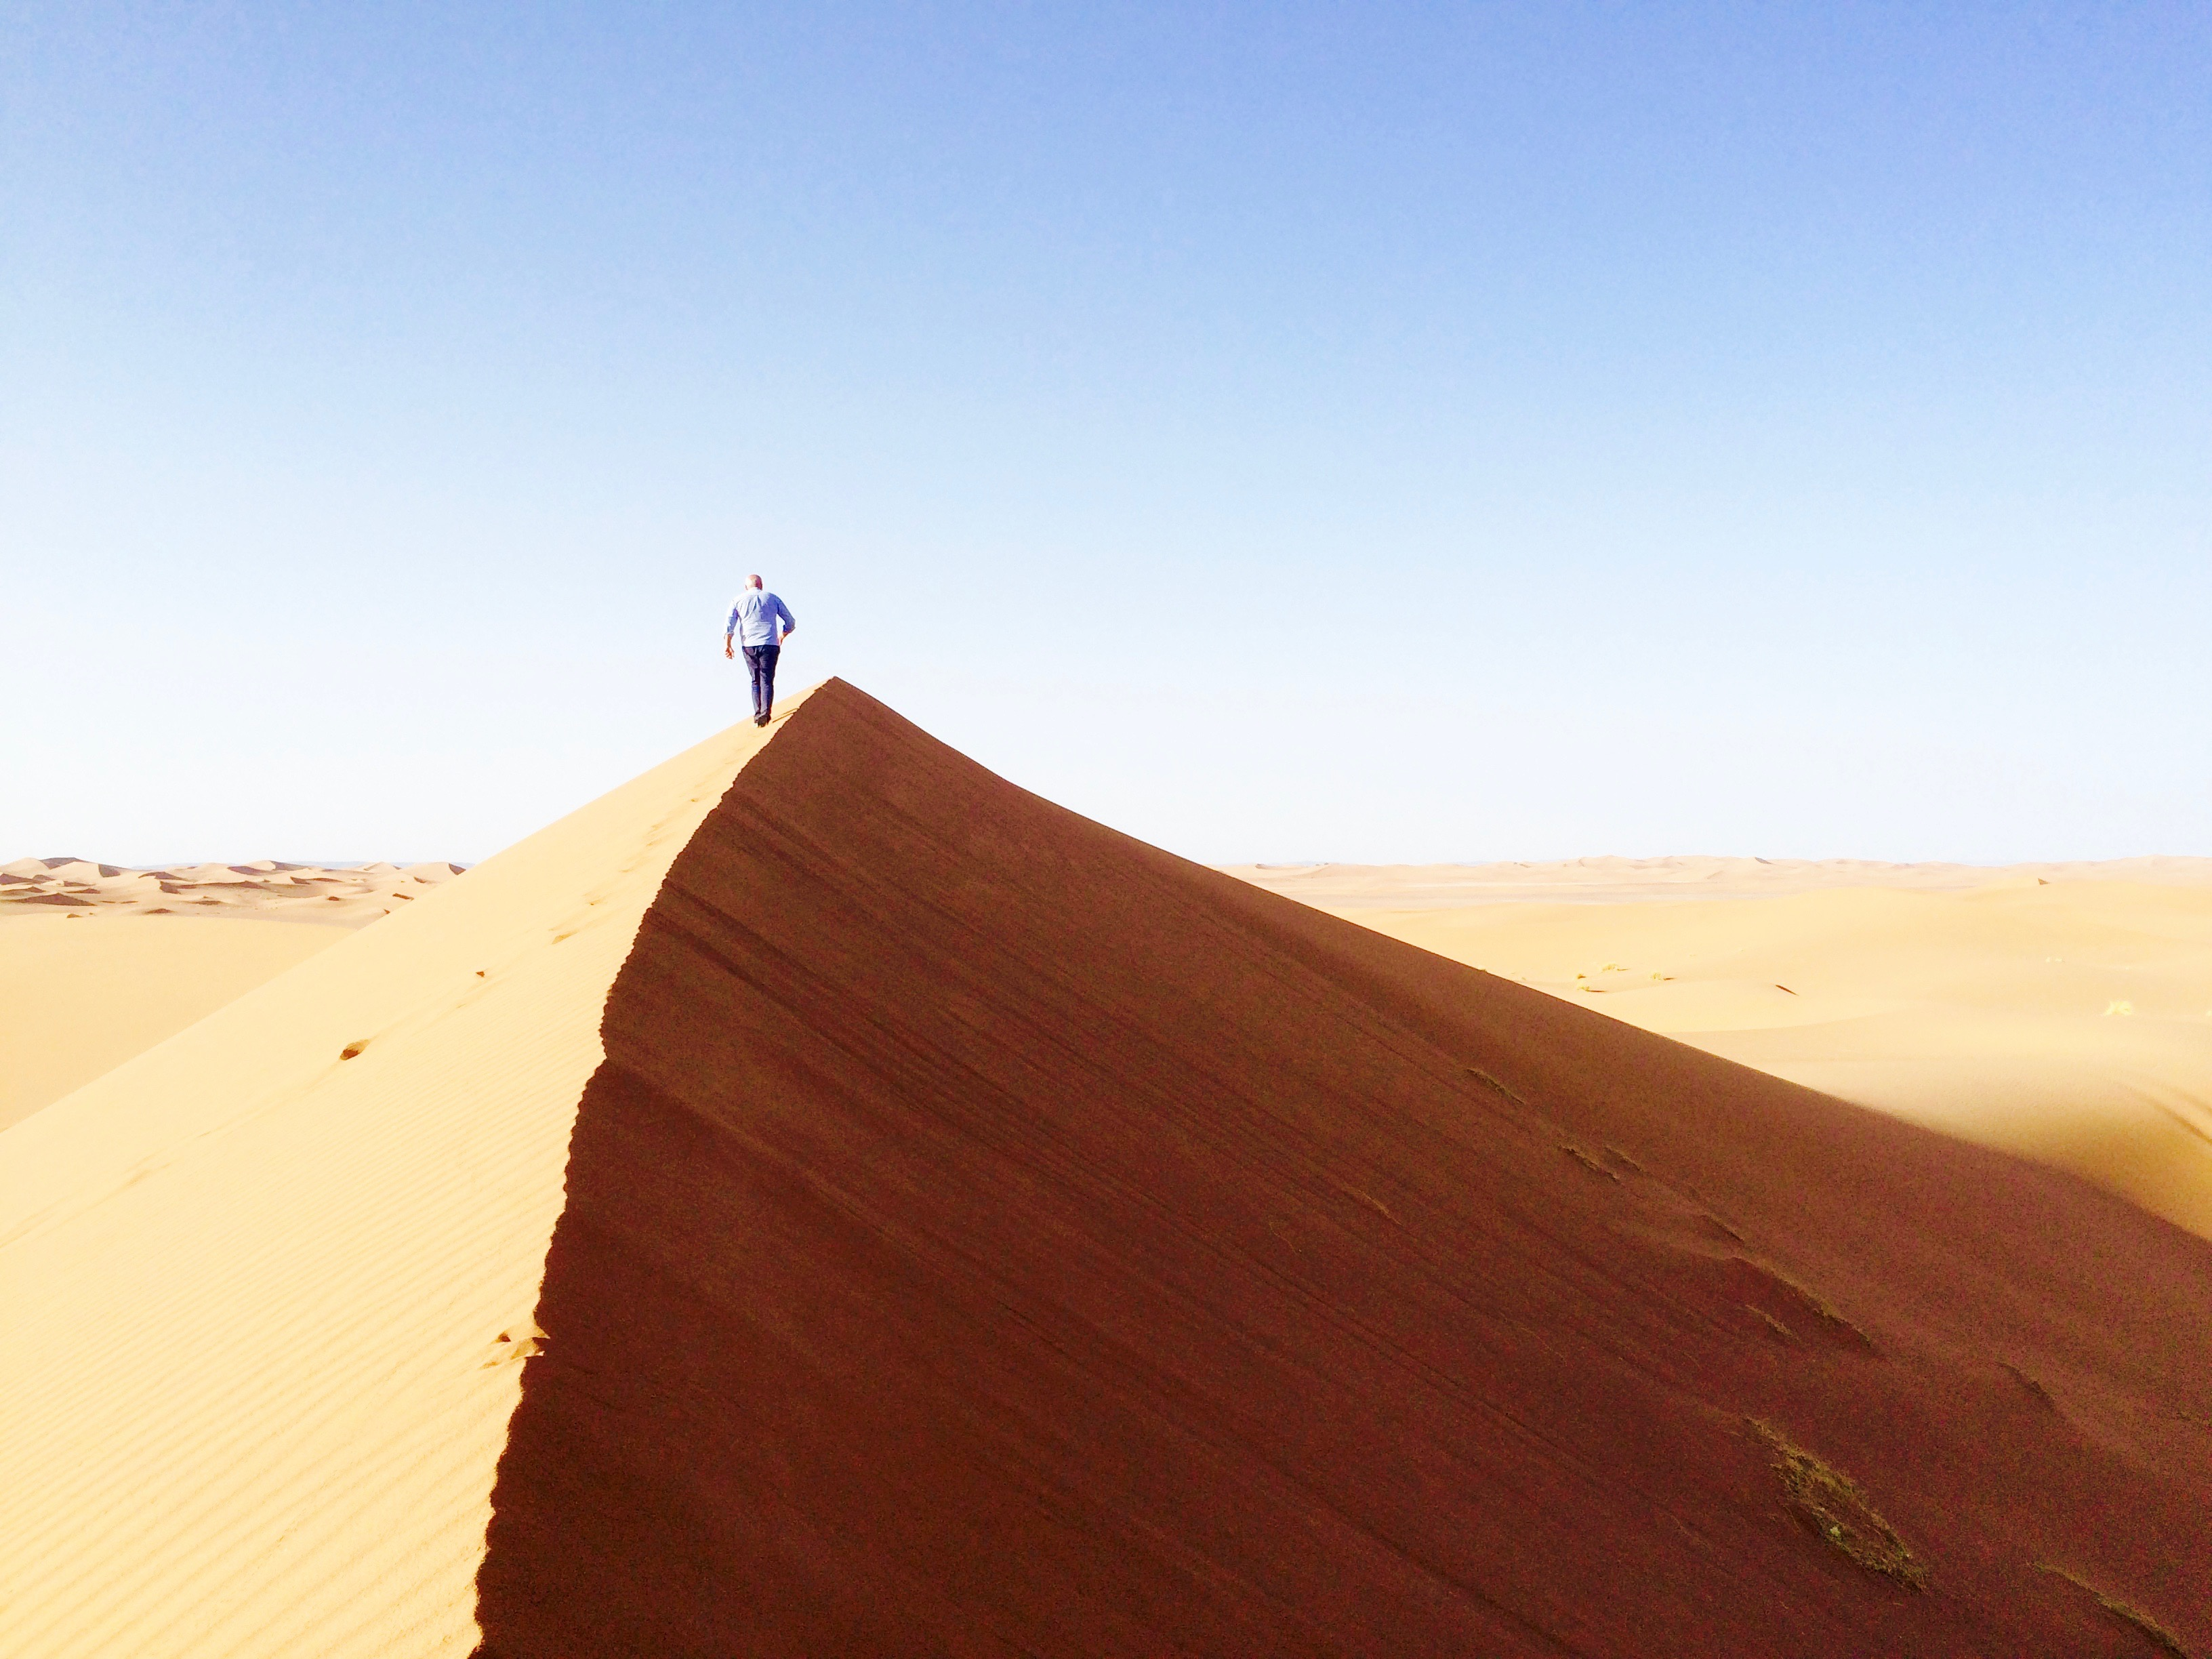 Cruising Morocco? Do it, you'll love it!